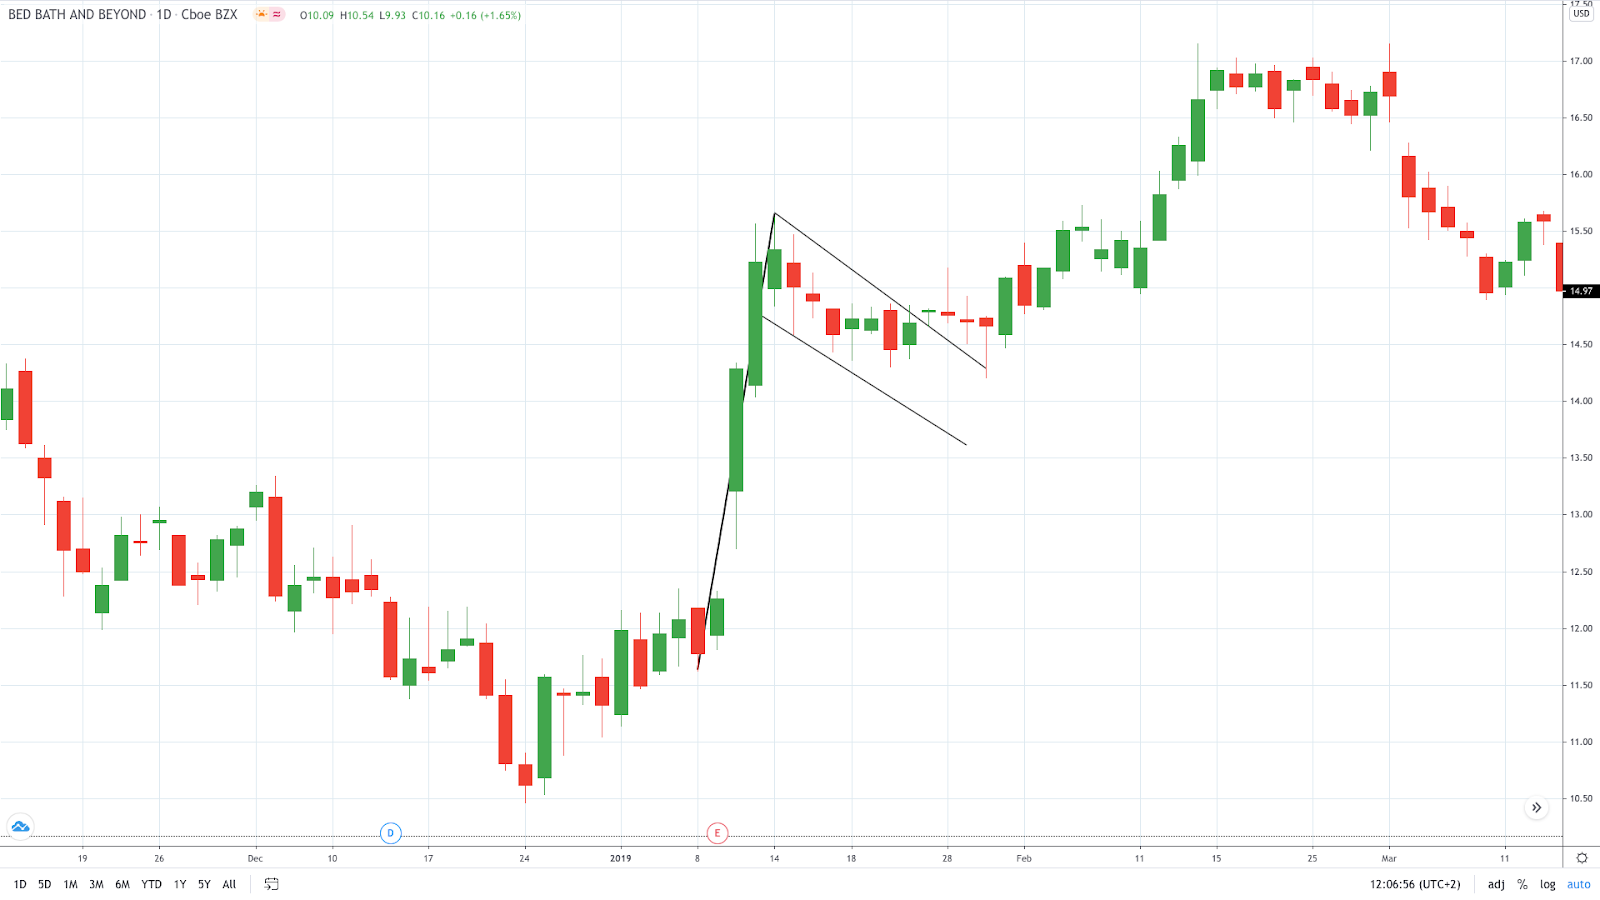 A bull flag - Bed Bath and Beyonce daily chart (Source: TradingView)